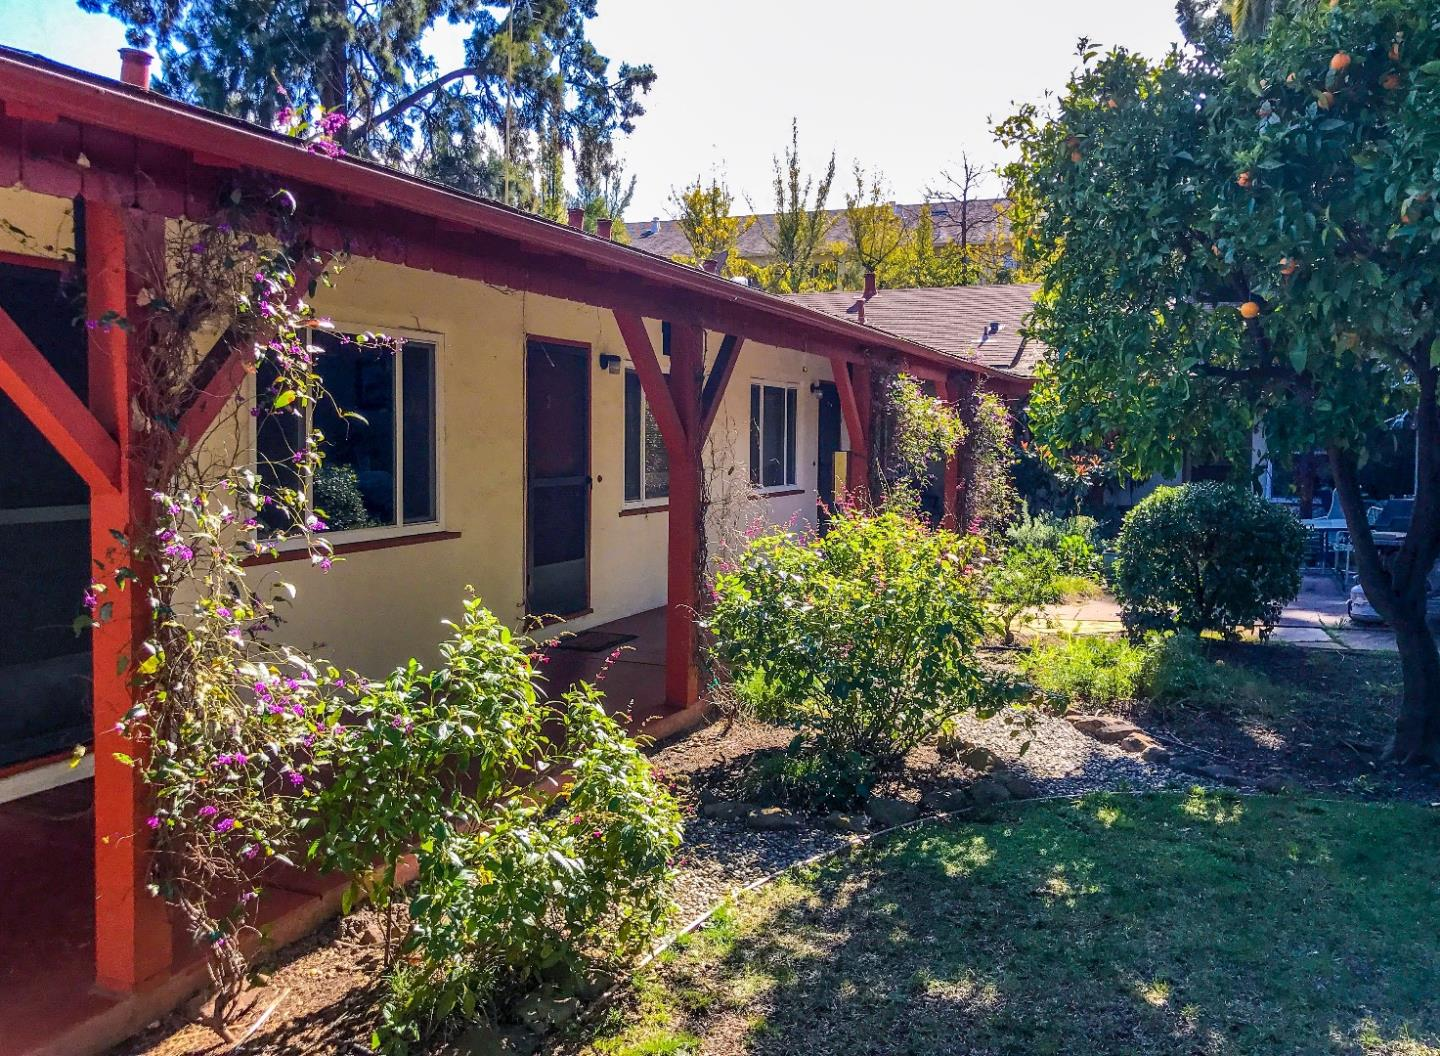 Multi-Family Home for Sale at 1945 Gamel Way 1945 Gamel Way Mountain View, California 94040 United States